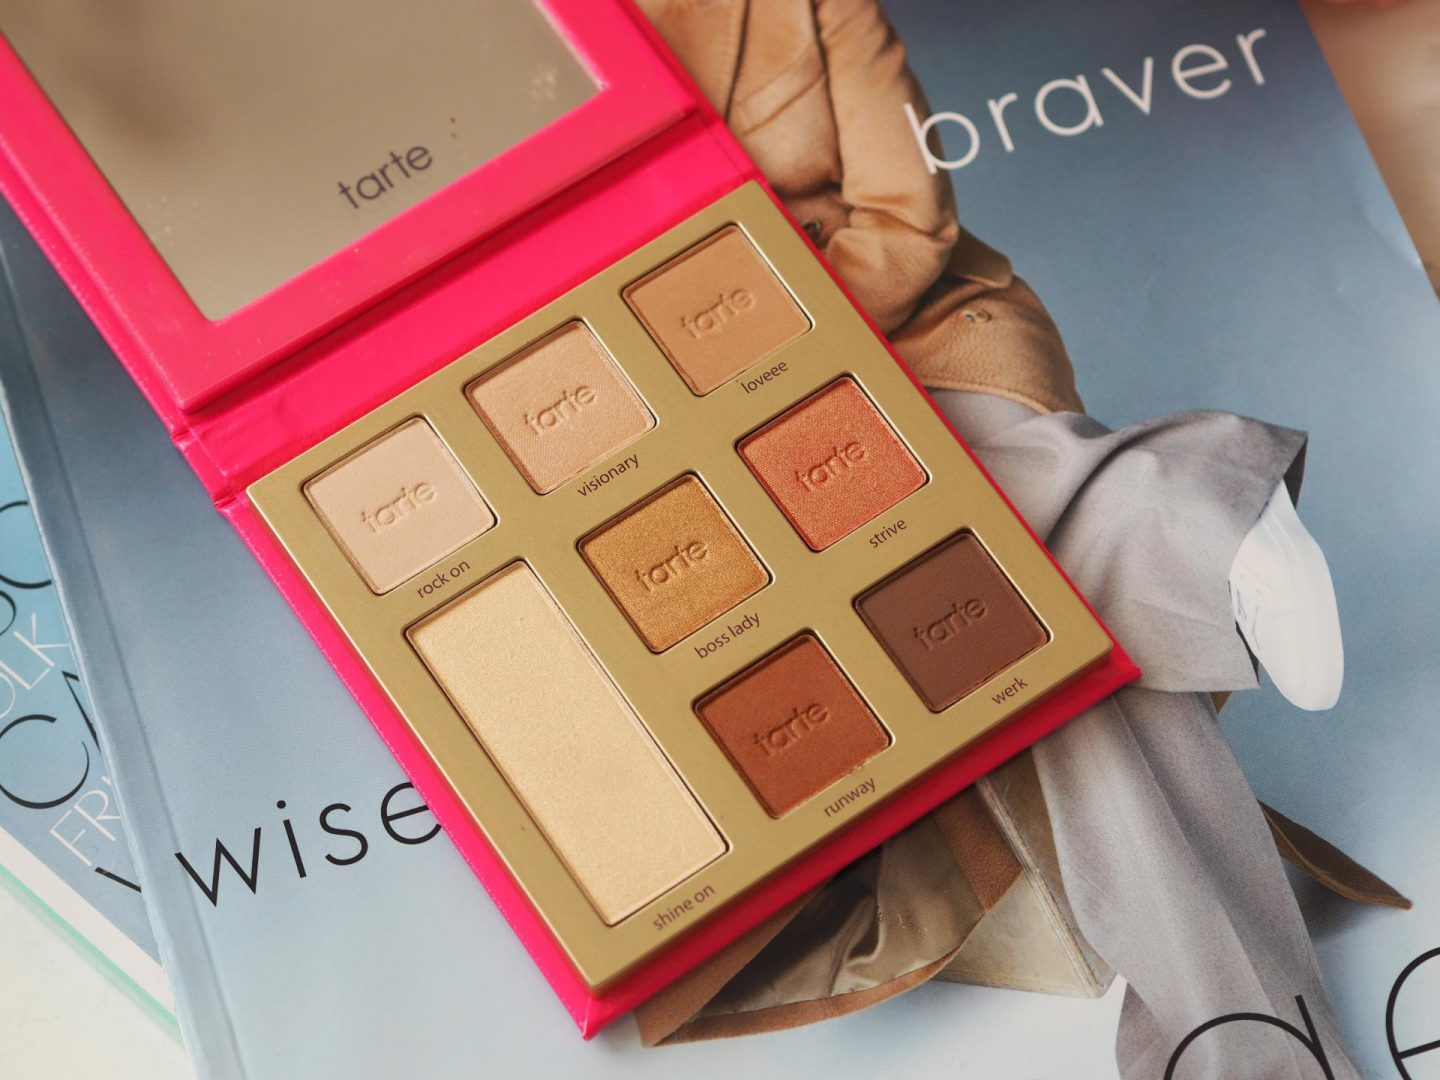 Top Luxe Make-up - Product: Tarte Don't Quit Your Day Dream Eyeshadow Palette (Exclusive to QVC)